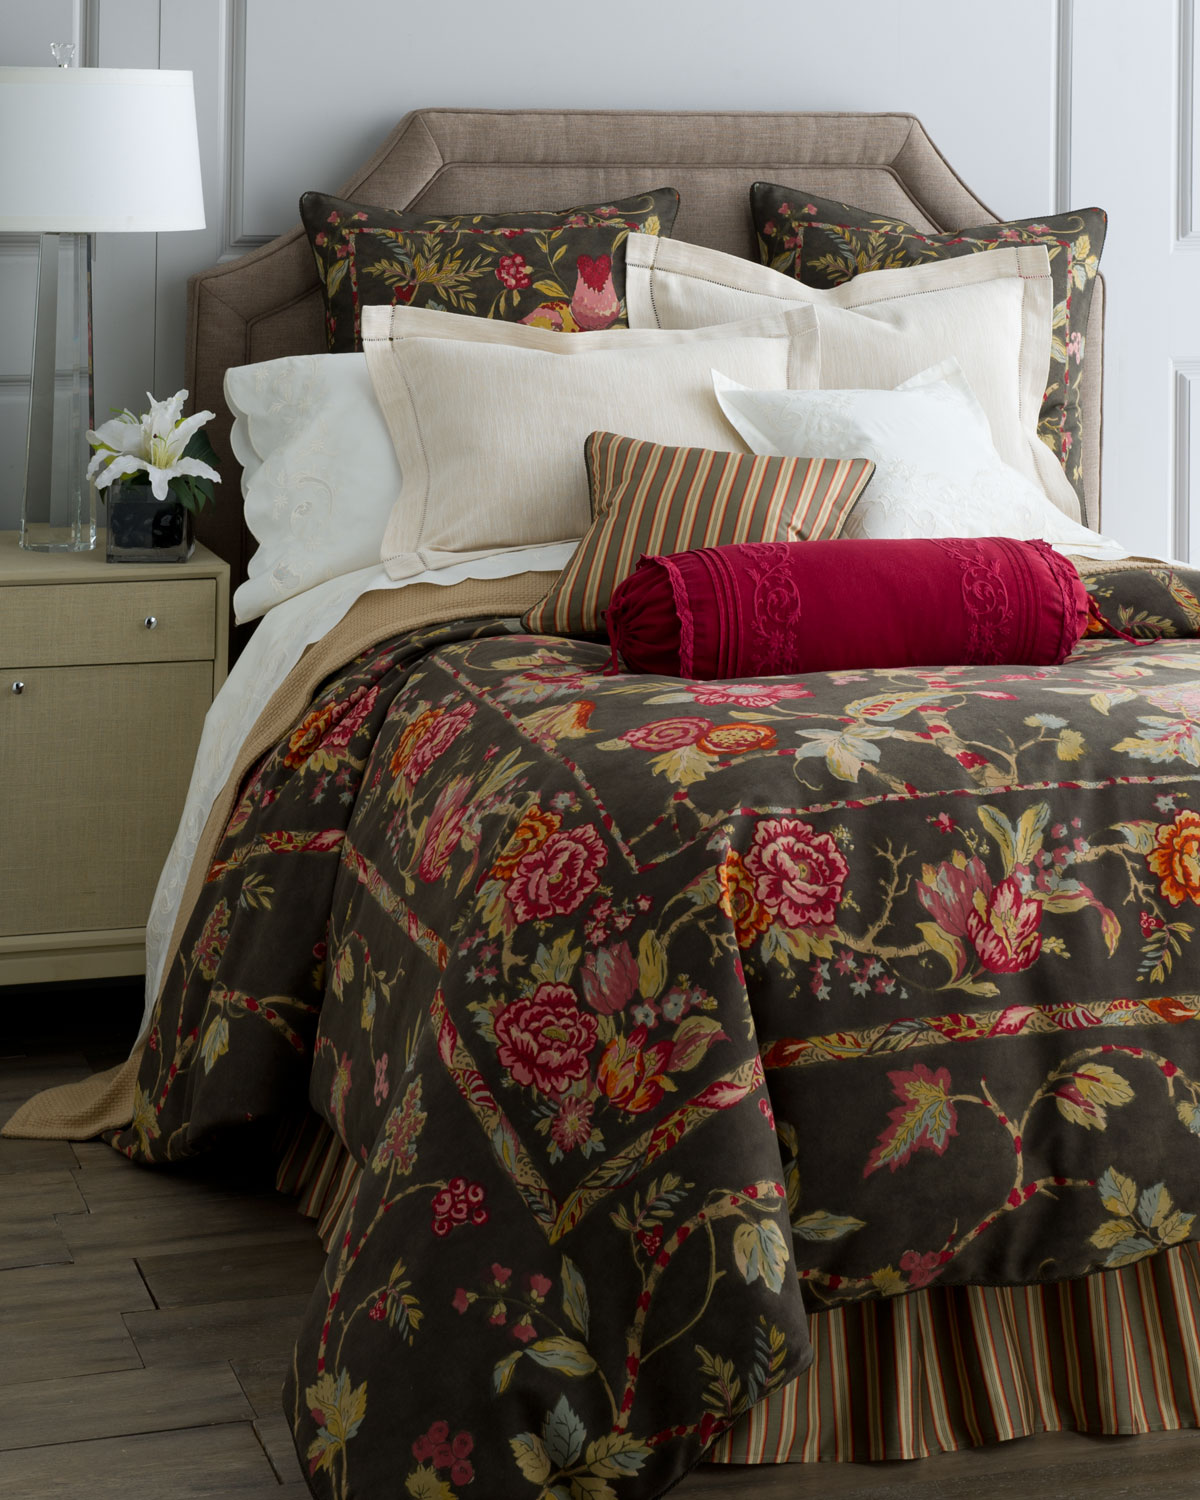 Simple I think it es from spending my childhood in wallpaper stores perusing wallpaper sample books Cape Catherine Duvet Cover by